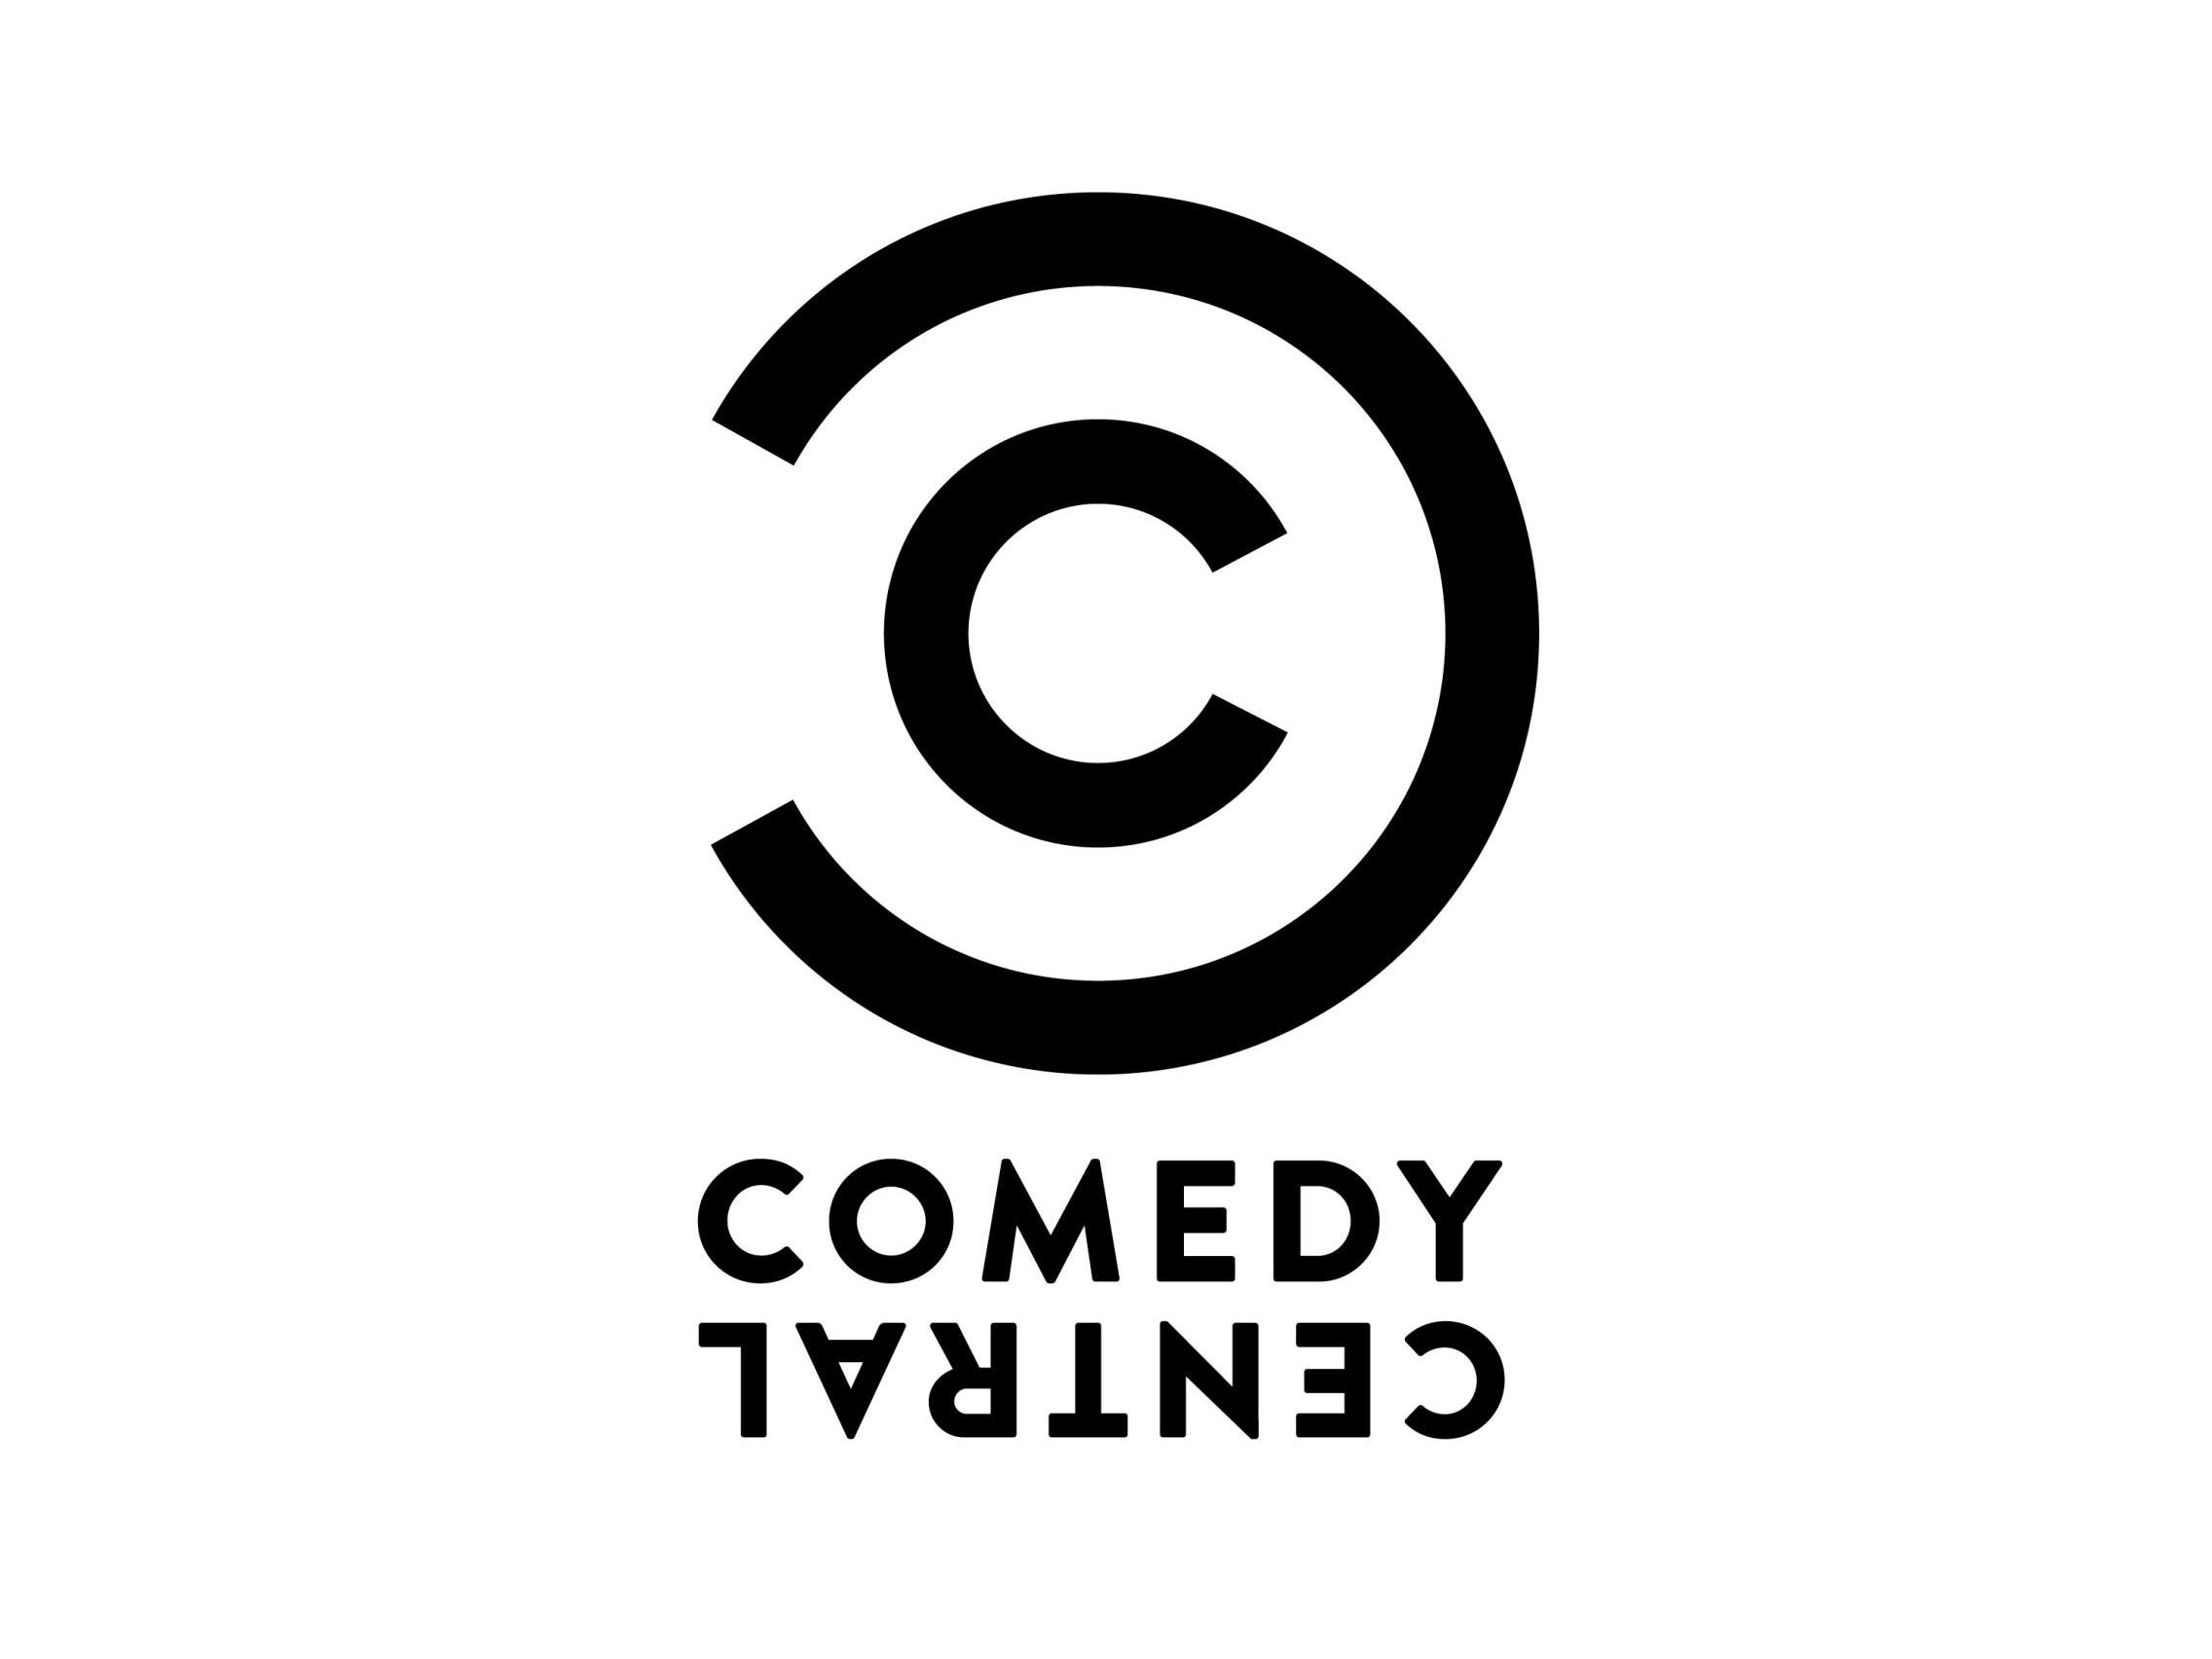 Comedy-Central-wordmark-logo.png